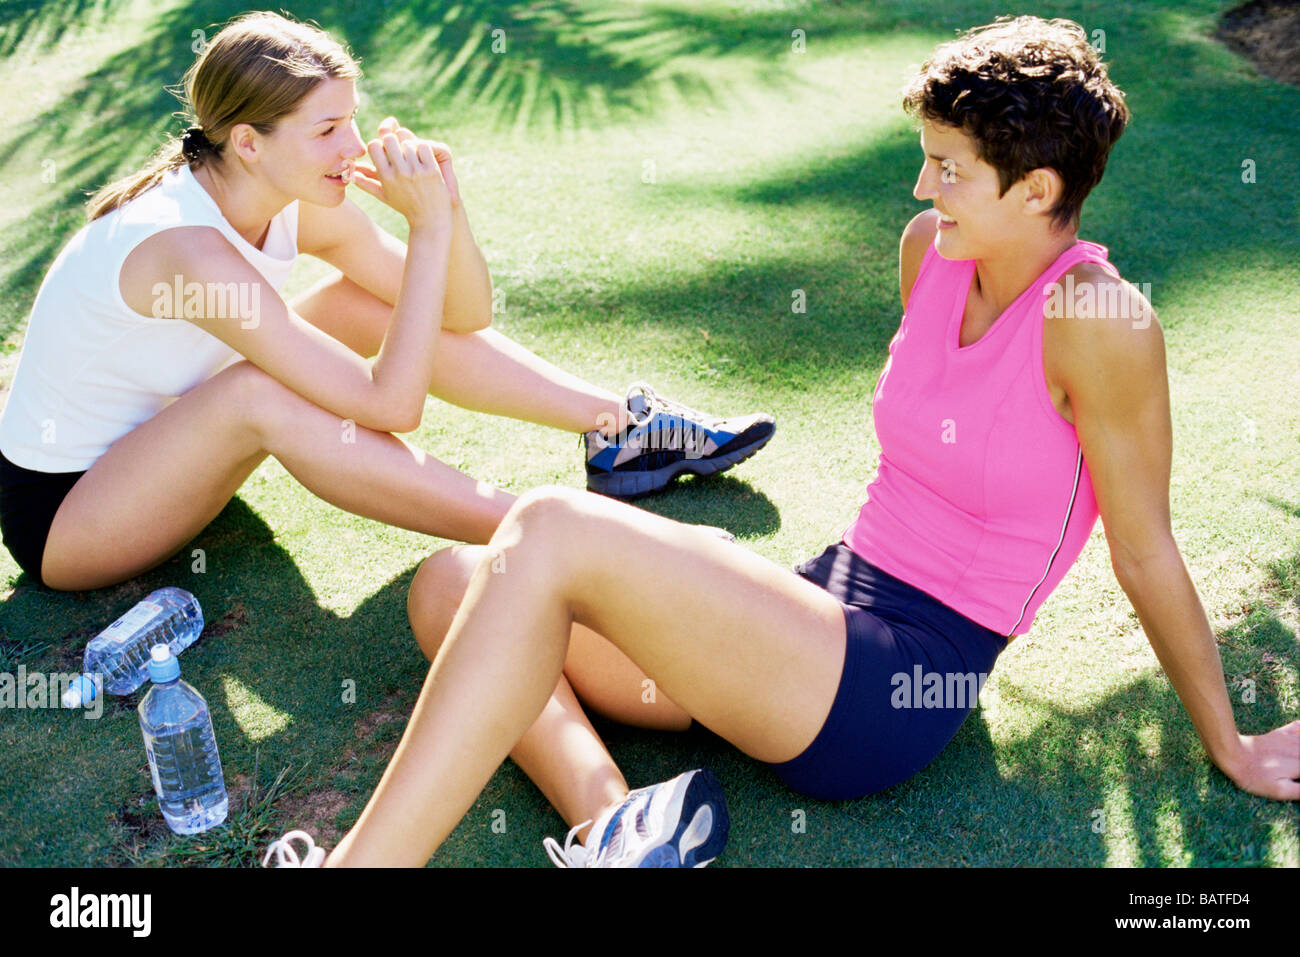 Friendship. Two women relaxing onthe grass. - Stock Image